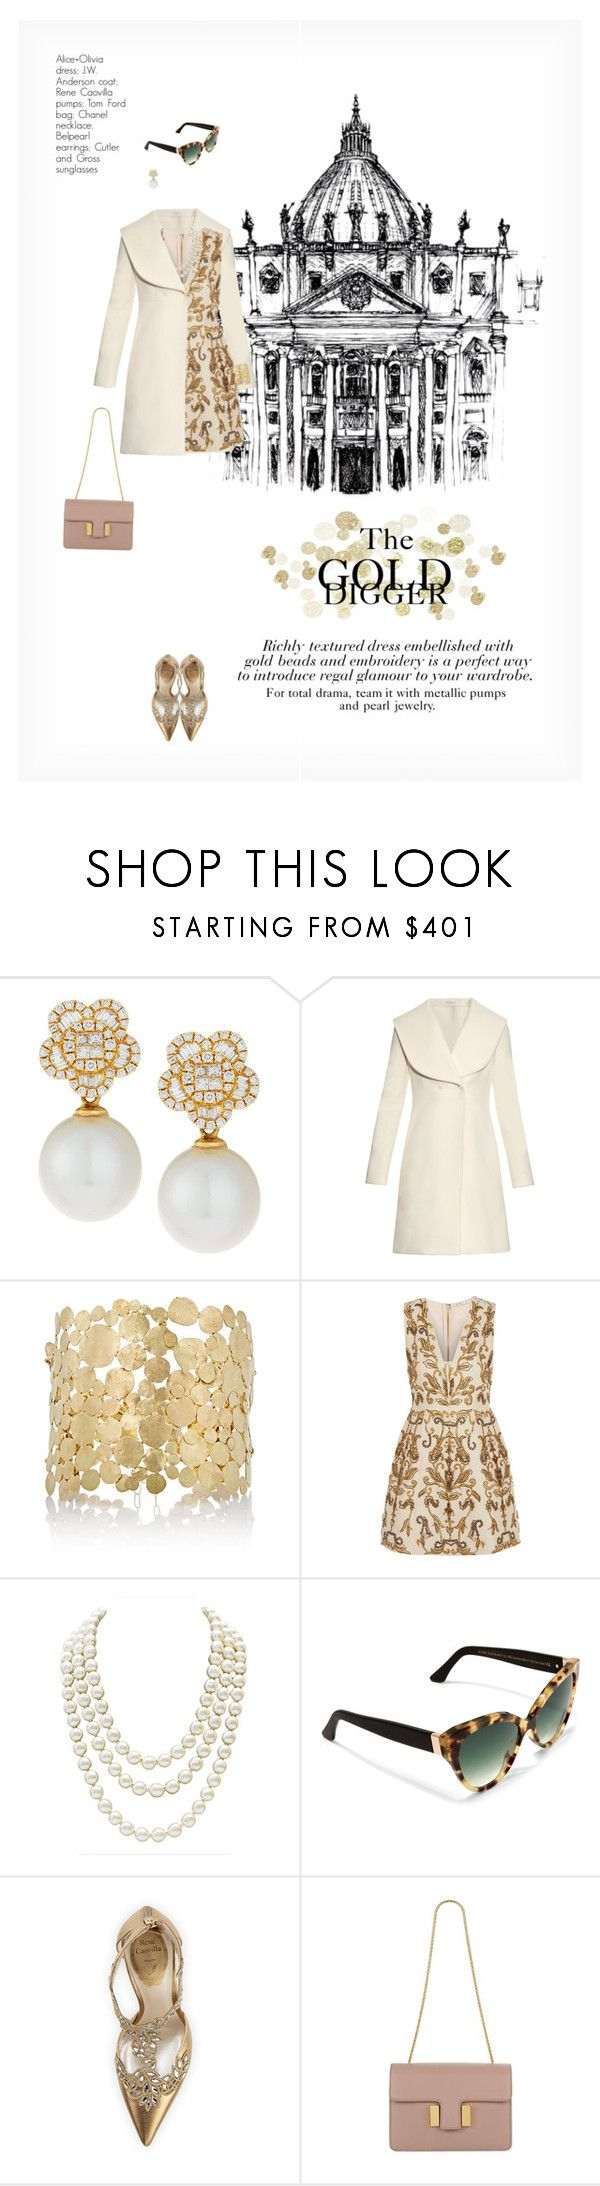 """""""THE GOLD DIGGER"""" by paint-it-black ❤ liked on Polyvore featuring Belpearl, J.W. Anderson, Judy Geib, Alice + Olivia, Chanel, Cutler and Gross, René Caovilla, Tom Ford, gold and classy"""